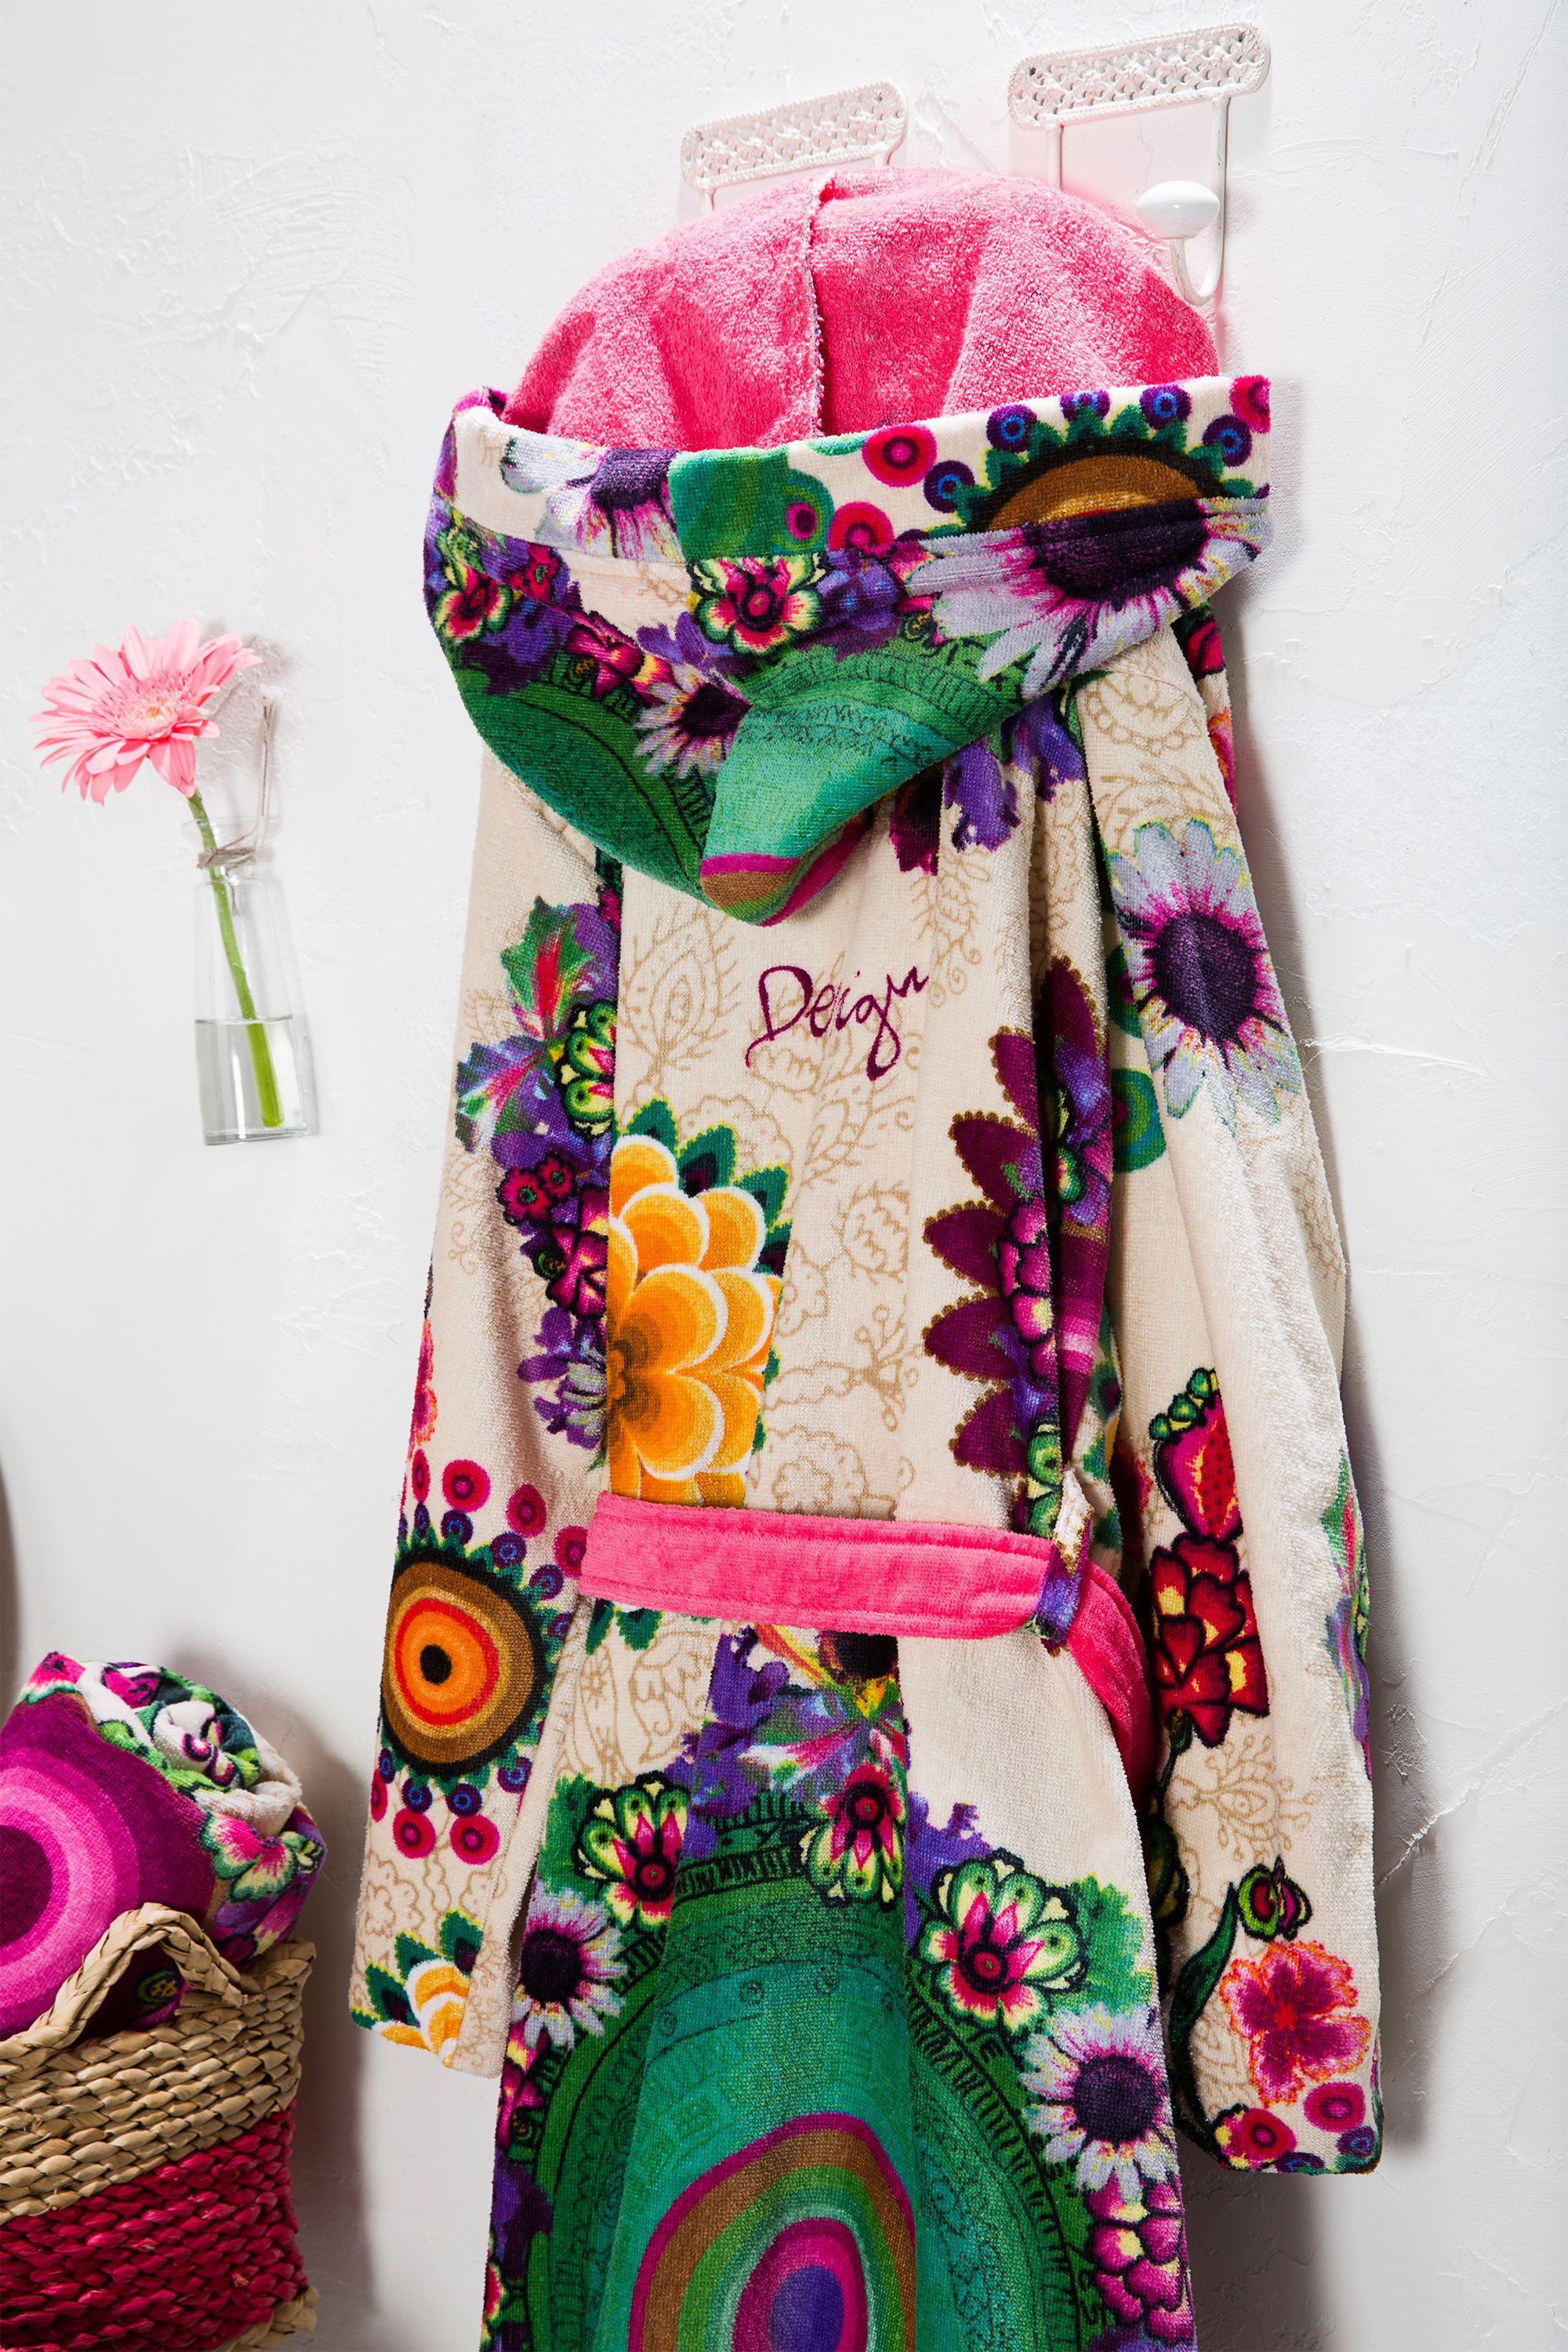 bda0309e416 This soft floral Desigual bathrobe is too good to stay on the hanger ...